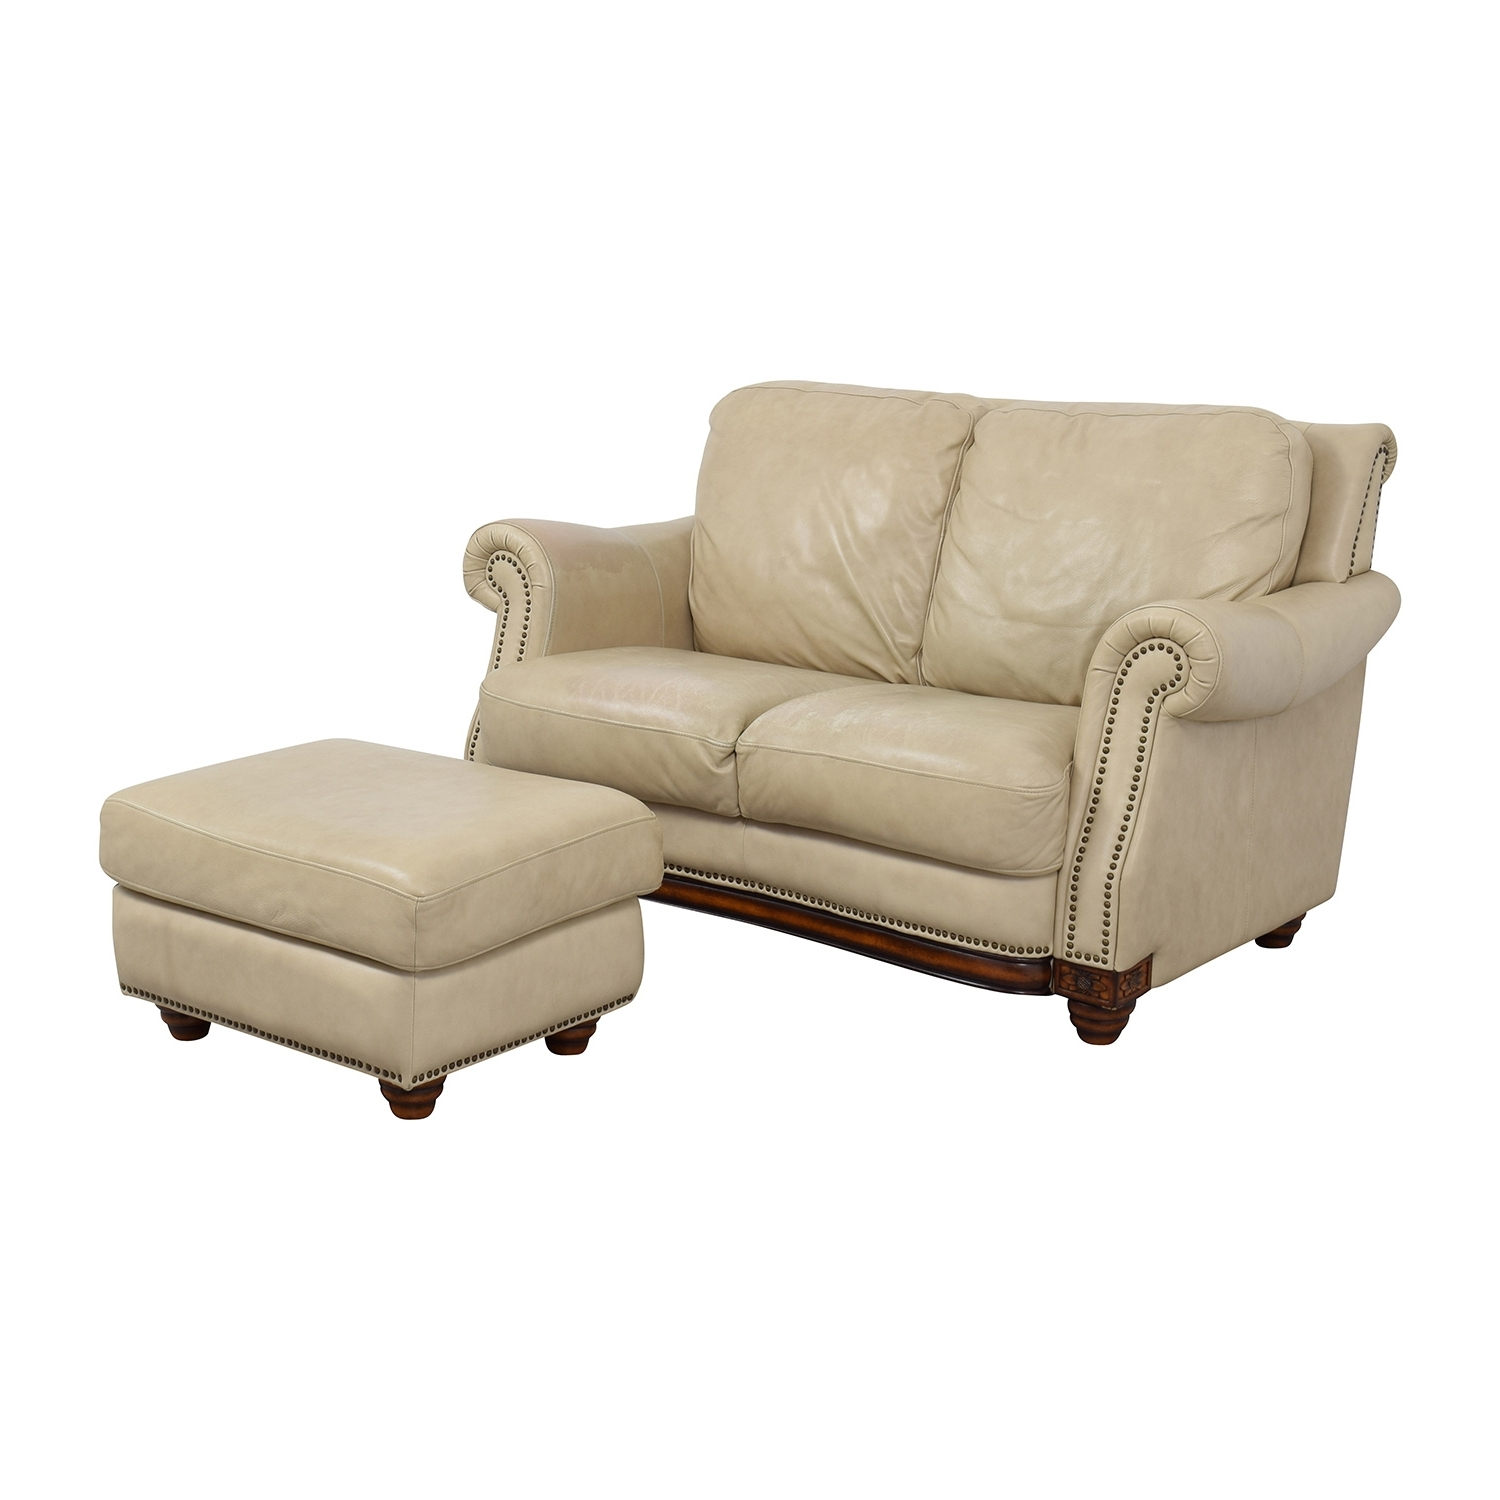 [%74% Off – Raymour & Flanigan Raymour & Flanigan Studded Tan With 2018 Loveseats With Ottoman|Loveseats With Ottoman In Widely Used 74% Off – Raymour & Flanigan Raymour & Flanigan Studded Tan|Preferred Loveseats With Ottoman In 74% Off – Raymour & Flanigan Raymour & Flanigan Studded Tan|Fashionable 74% Off – Raymour & Flanigan Raymour & Flanigan Studded Tan For Loveseats With Ottoman%] (View 20 of 20)